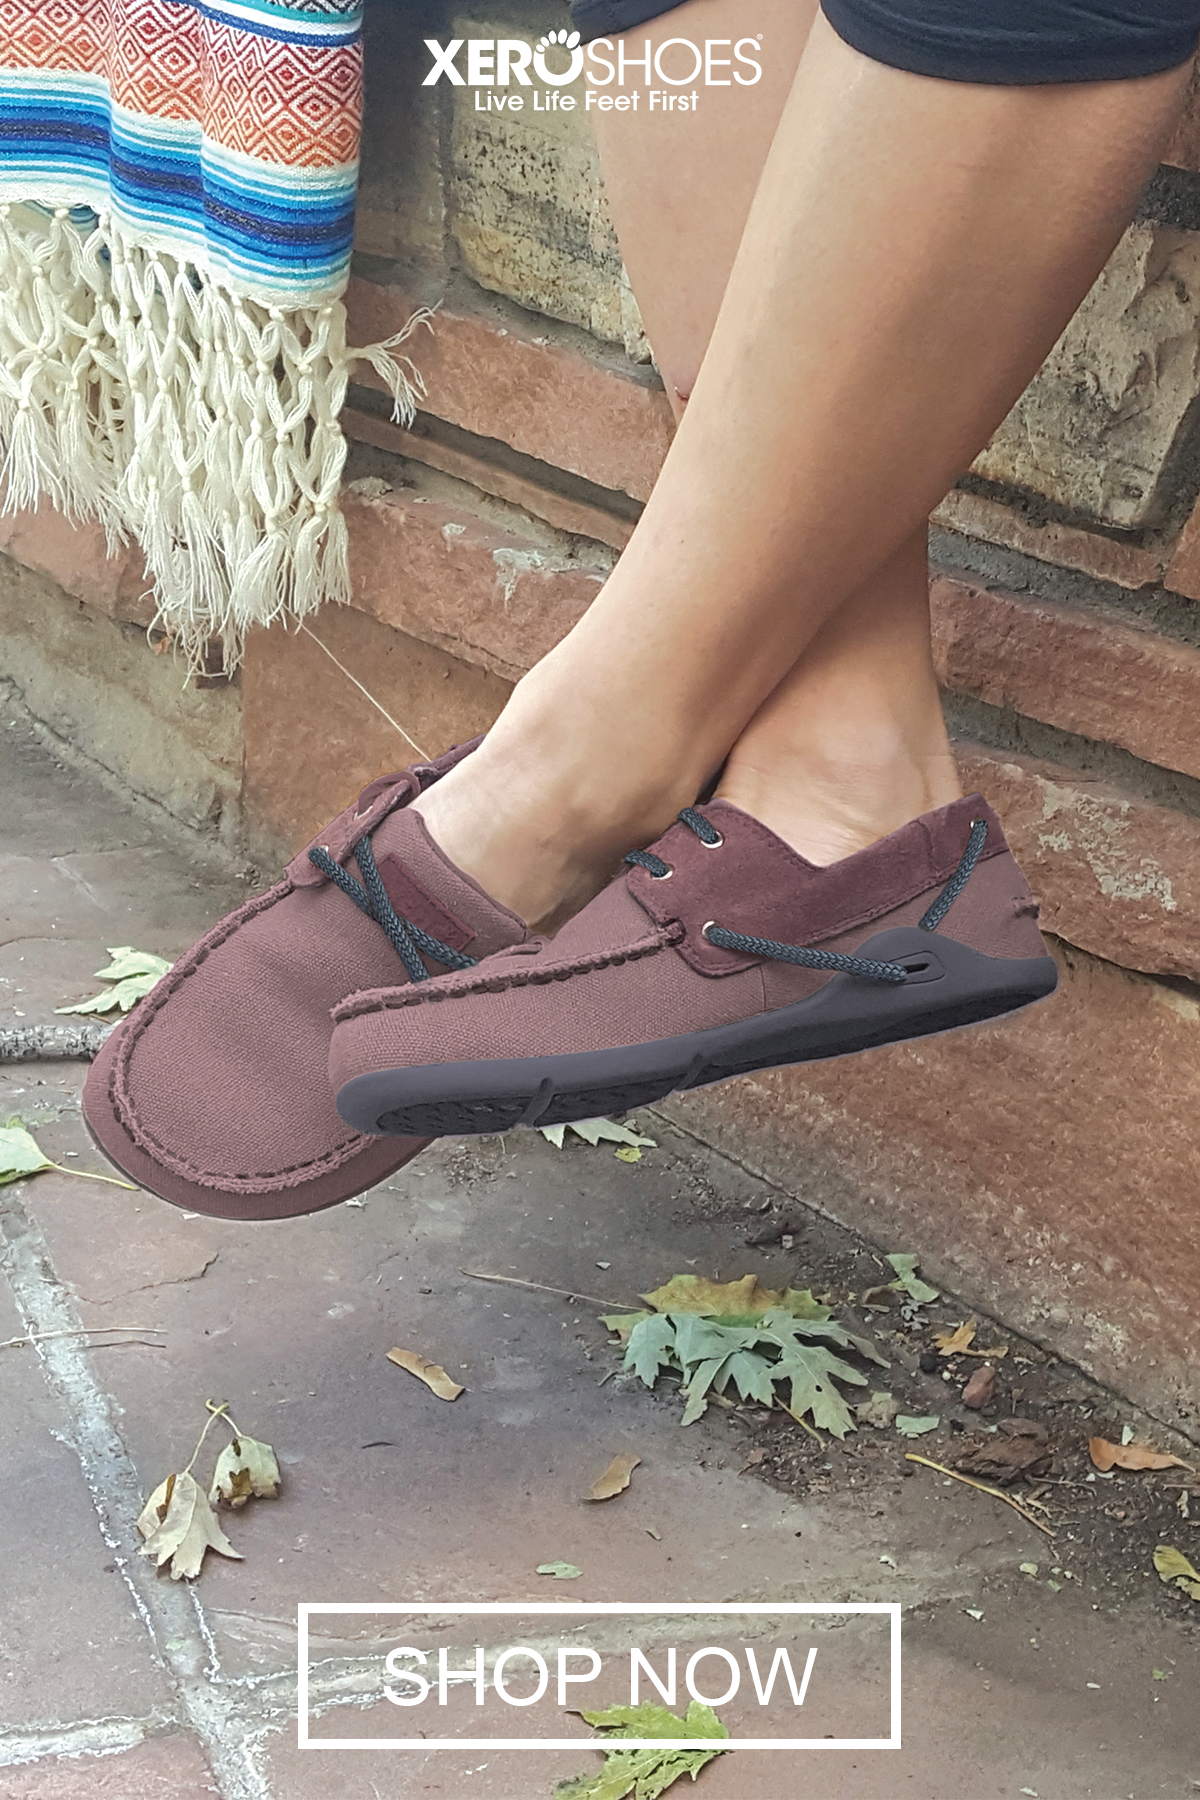 7c11b47d1138d New Products - Xero Shoes. Take the cozy comfort of your favorite slipper,  and turn that into a boat shoe. That's Boaty McBoat Shoe, or Boaty for  short.